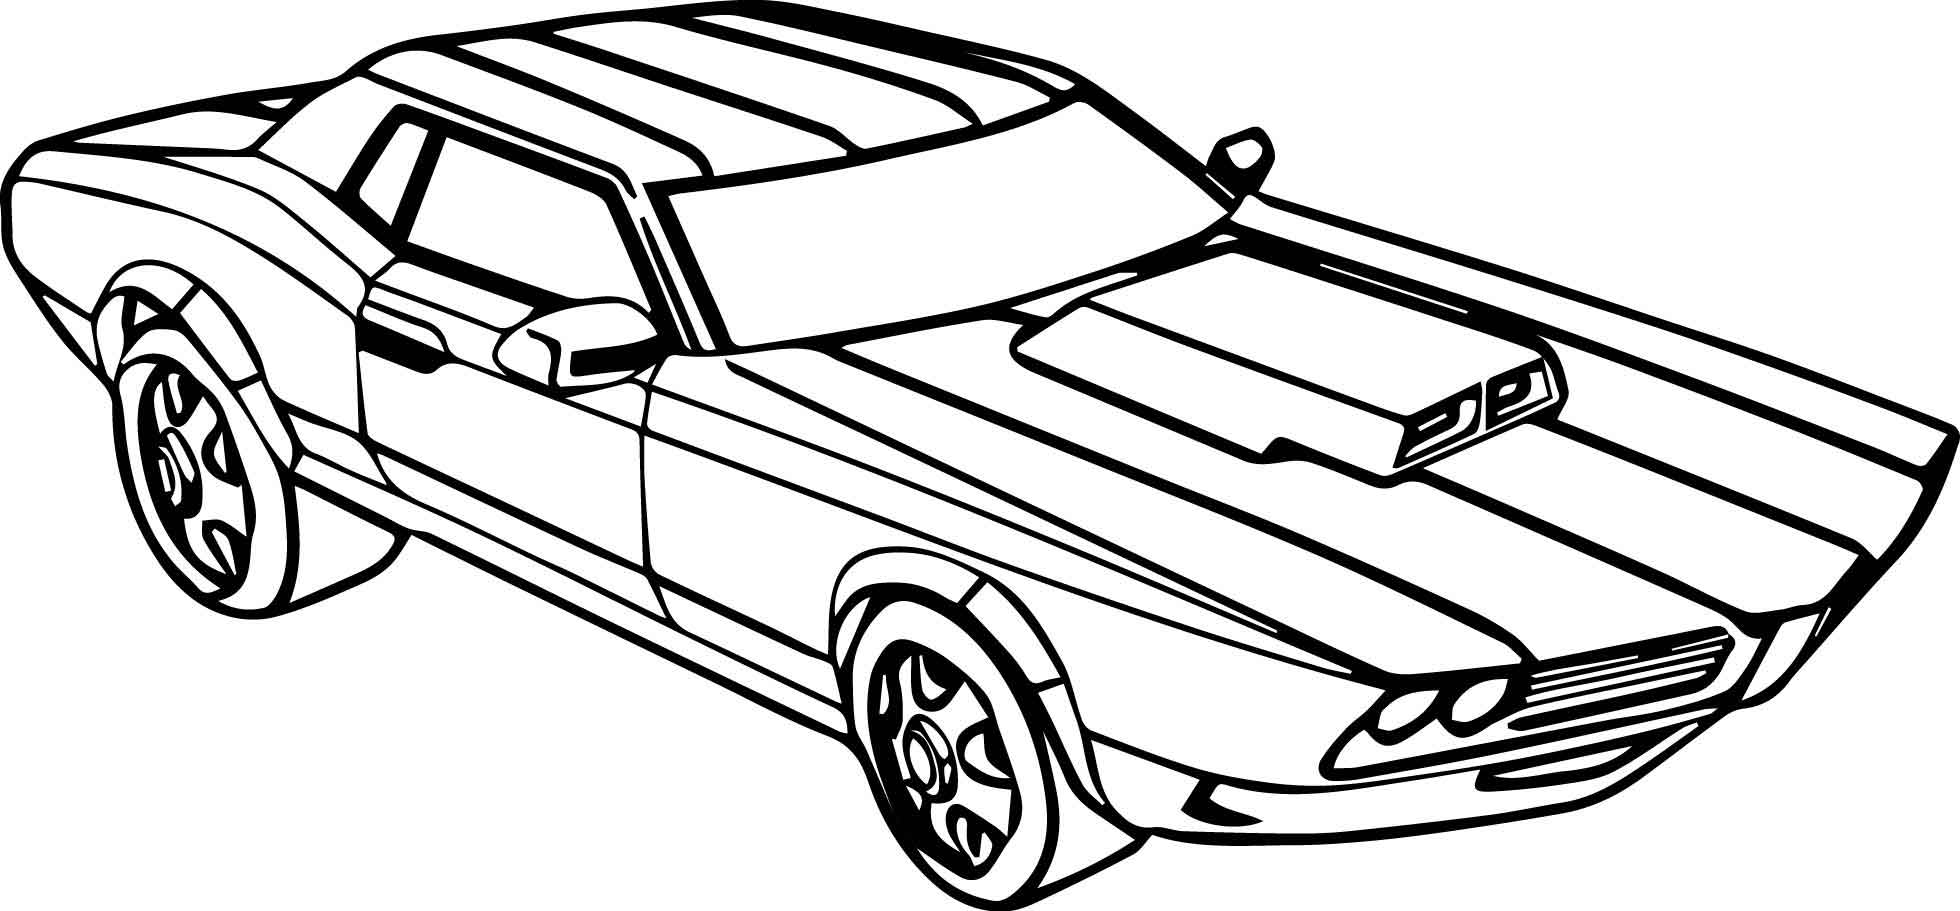 coloring pages of cool cars cool race car turbo coloring page race car car coloring cool coloring pages cars of